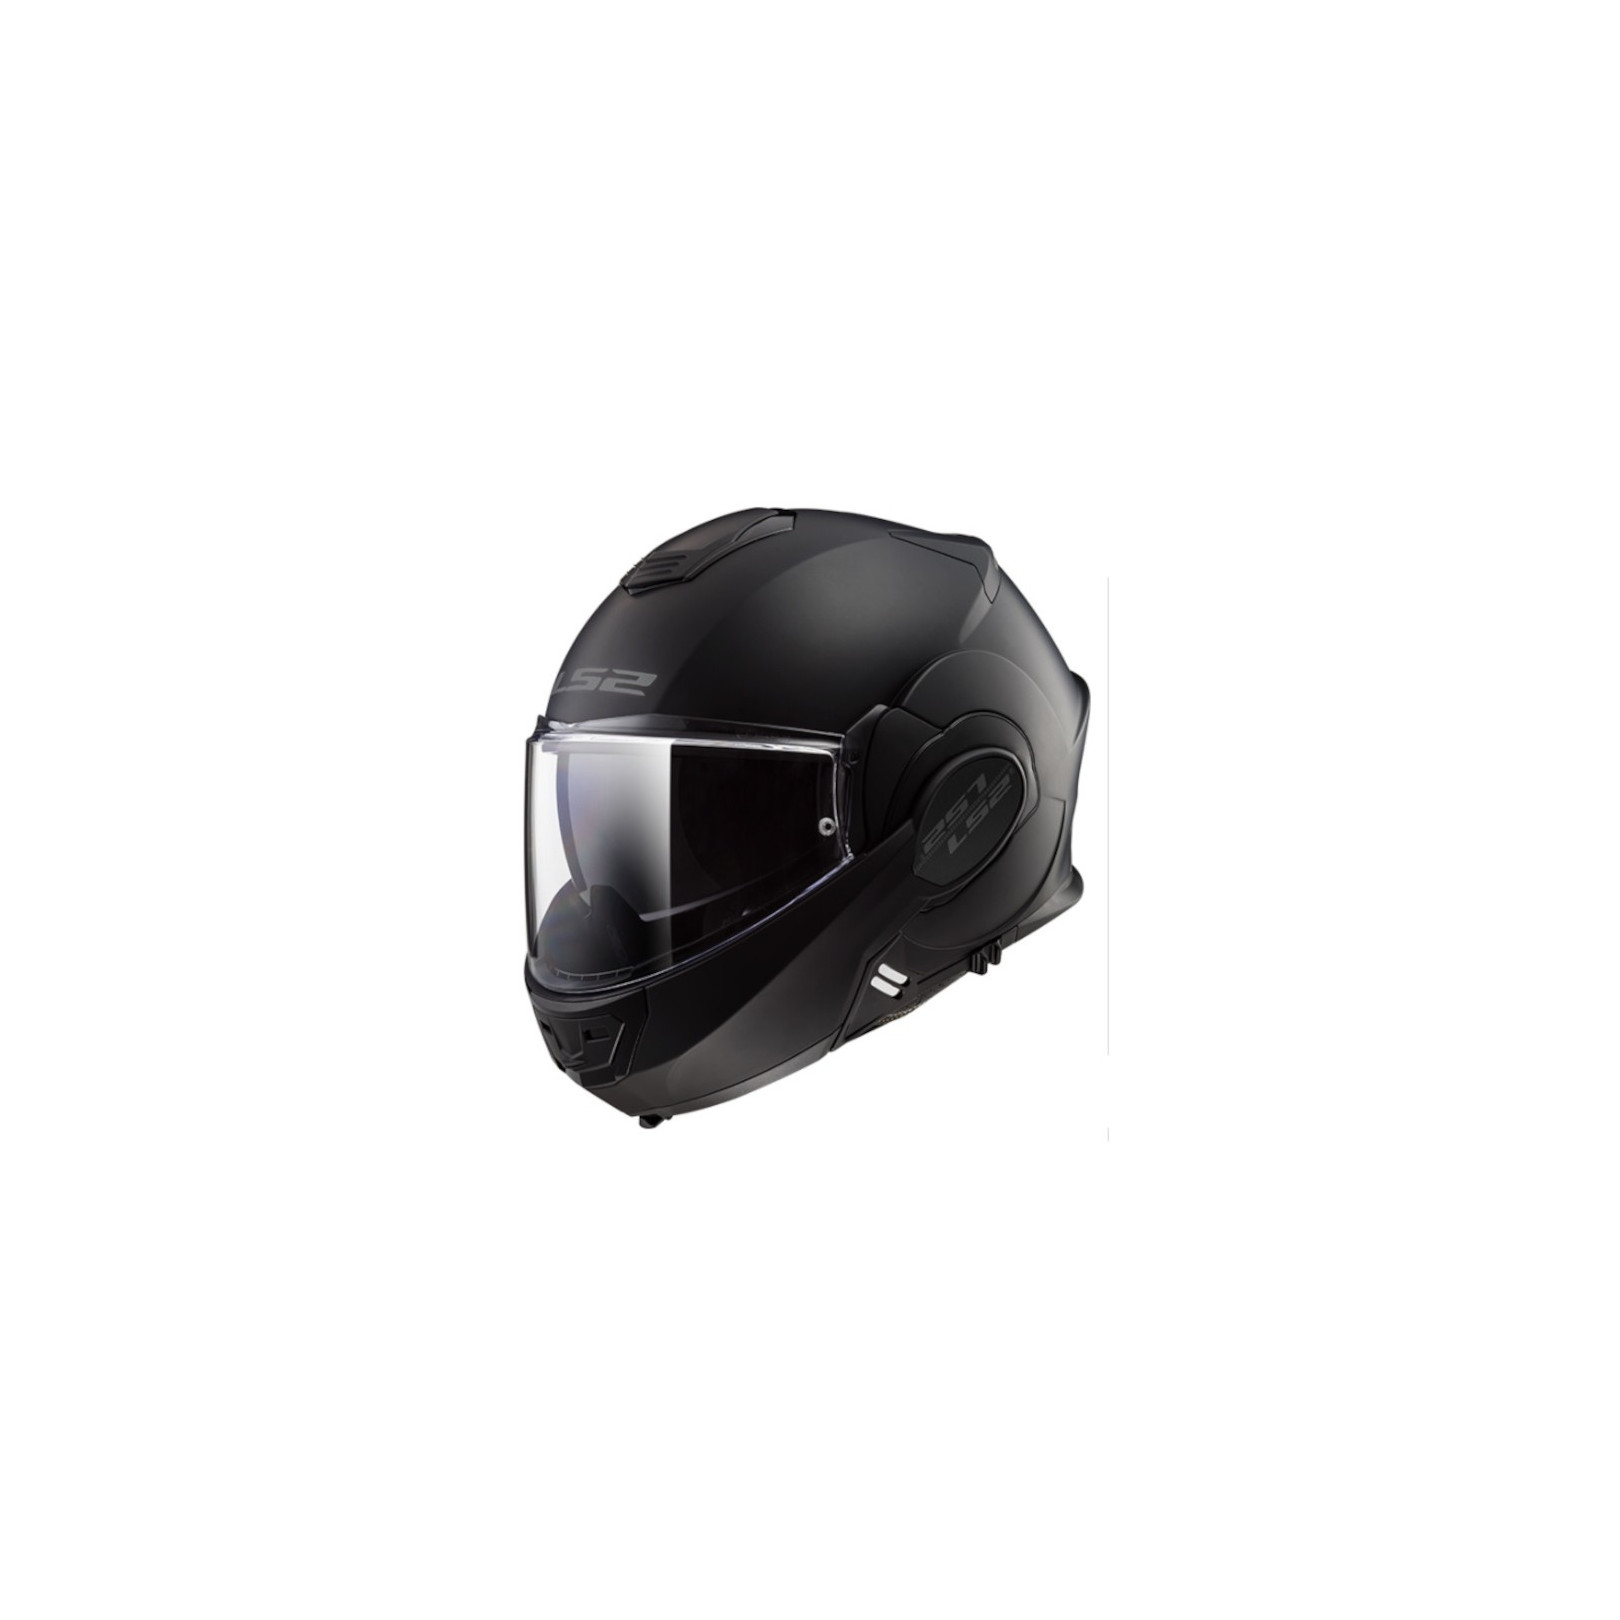 Casque LS2 FF399 Valiant Smart Bluetooth Edition Avec Sena